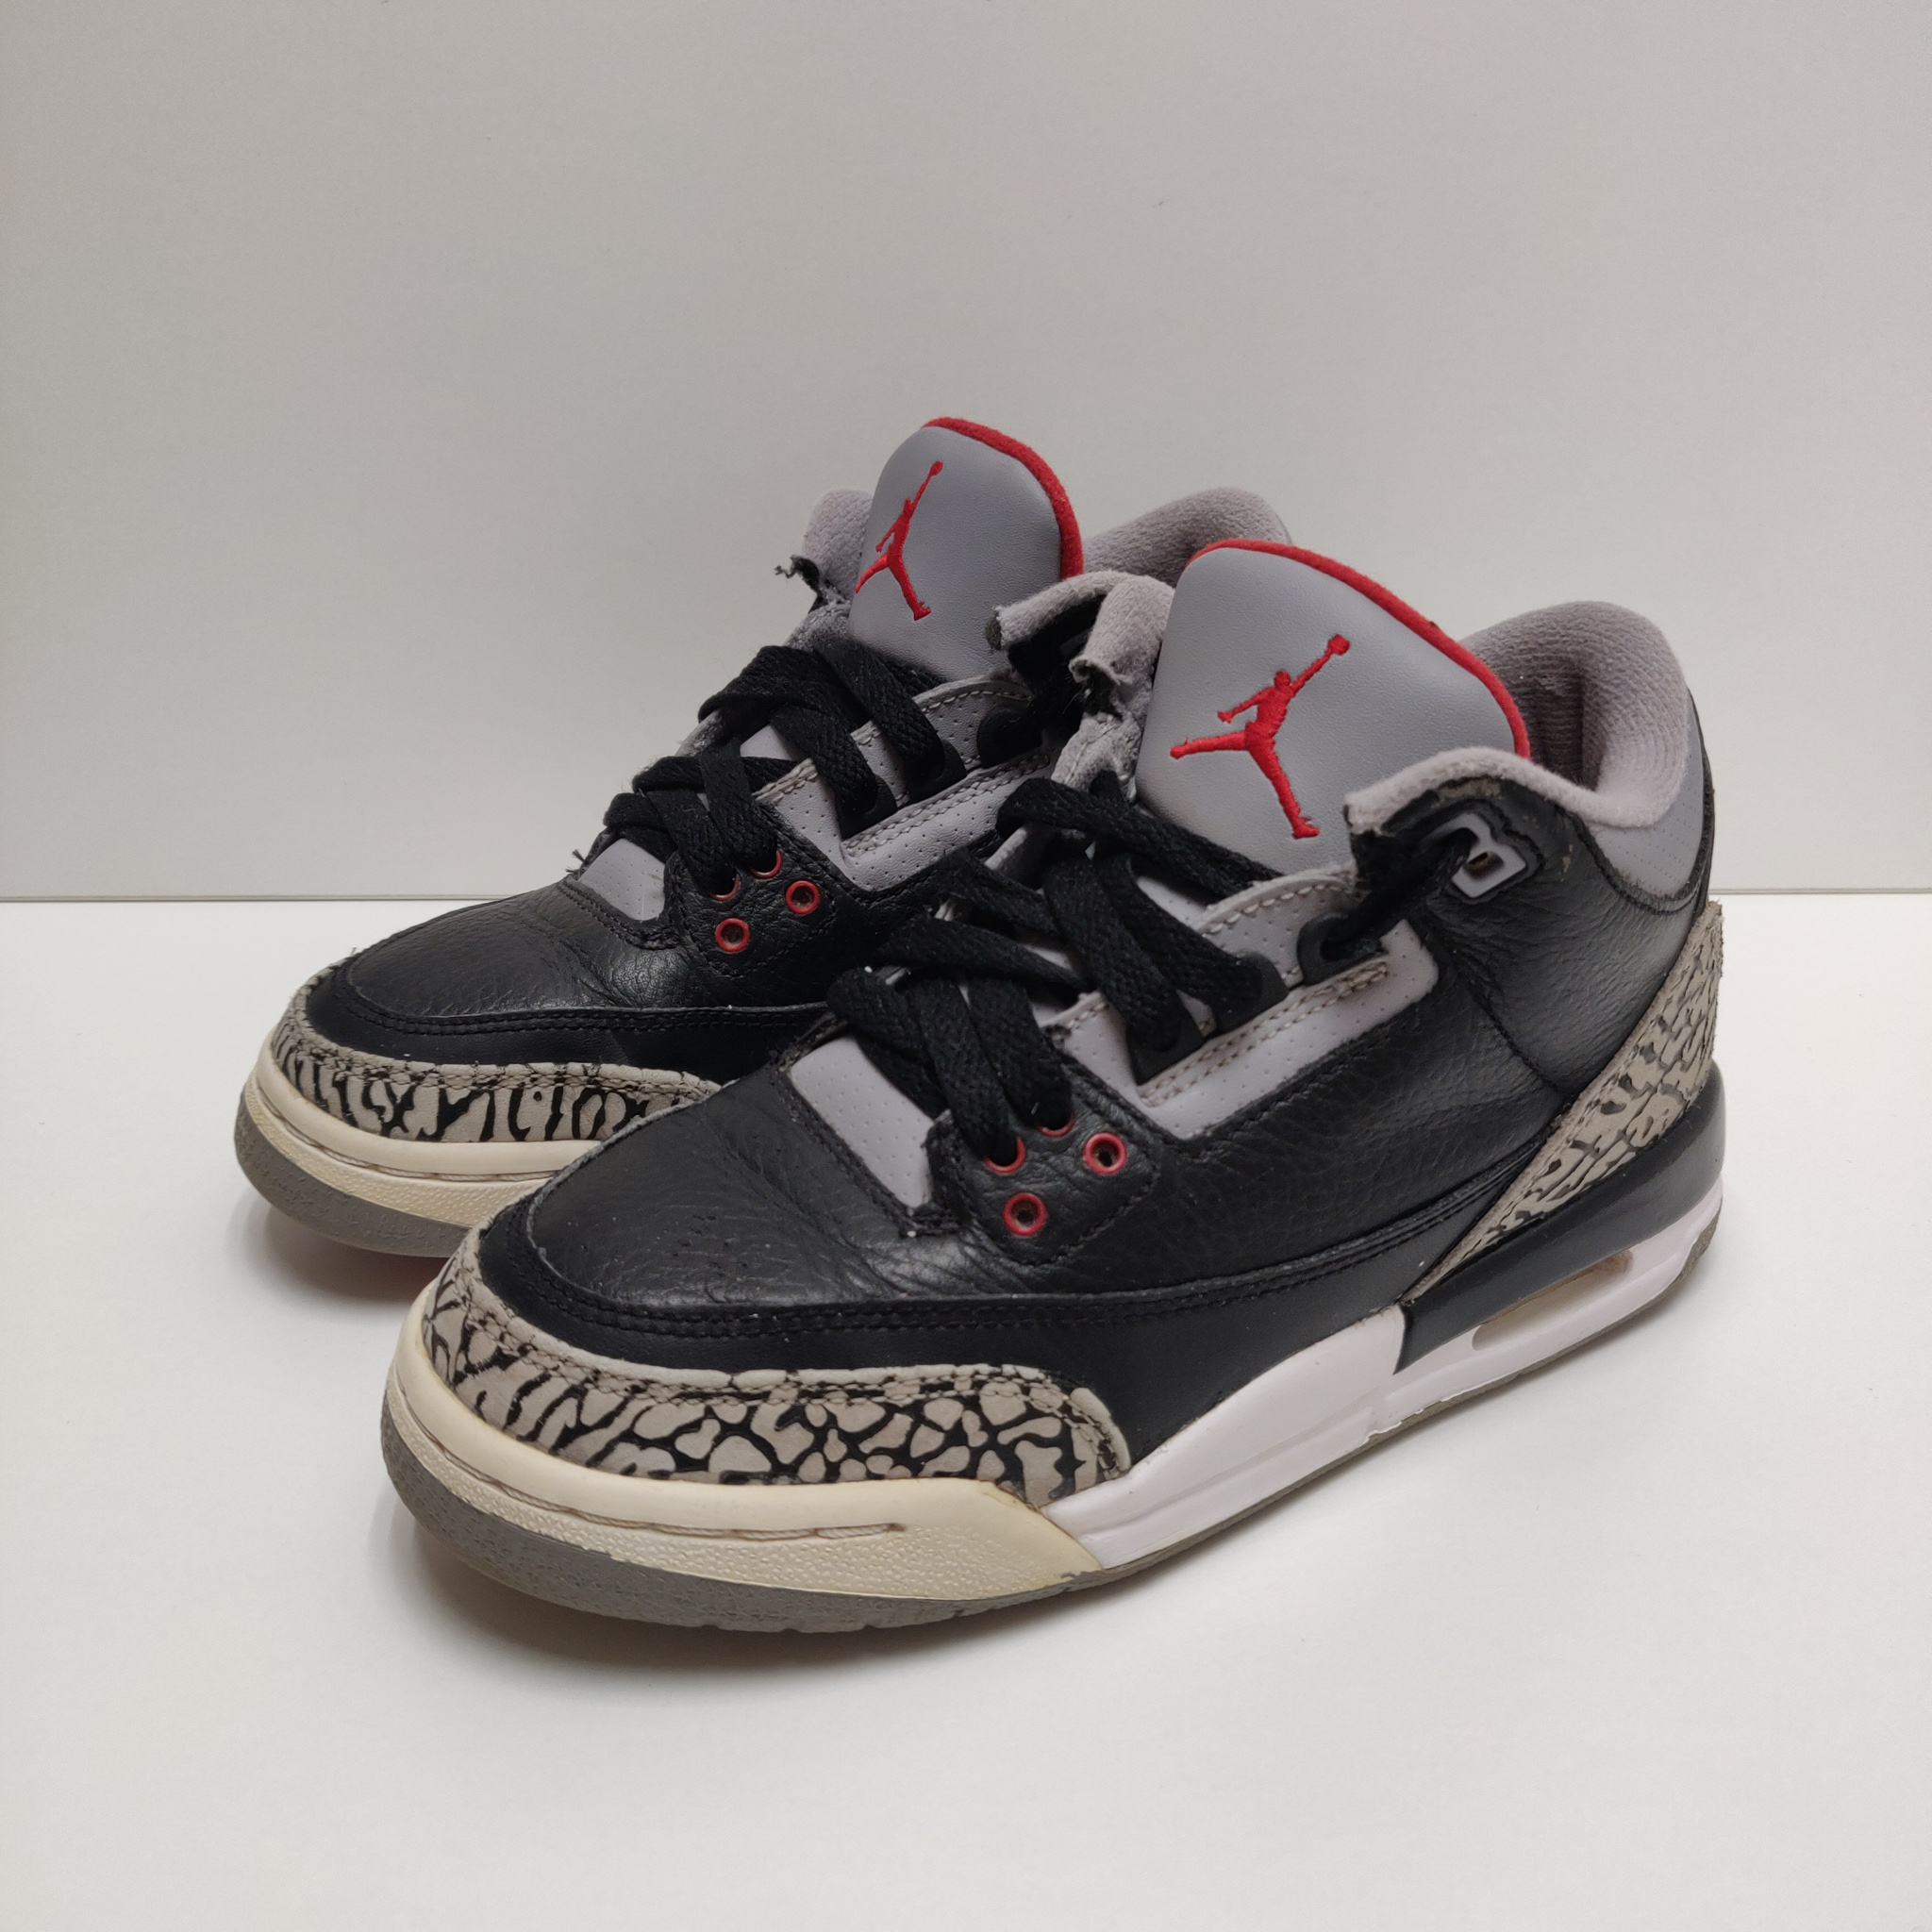 Jordan 3 Retro Black Cement (GS)